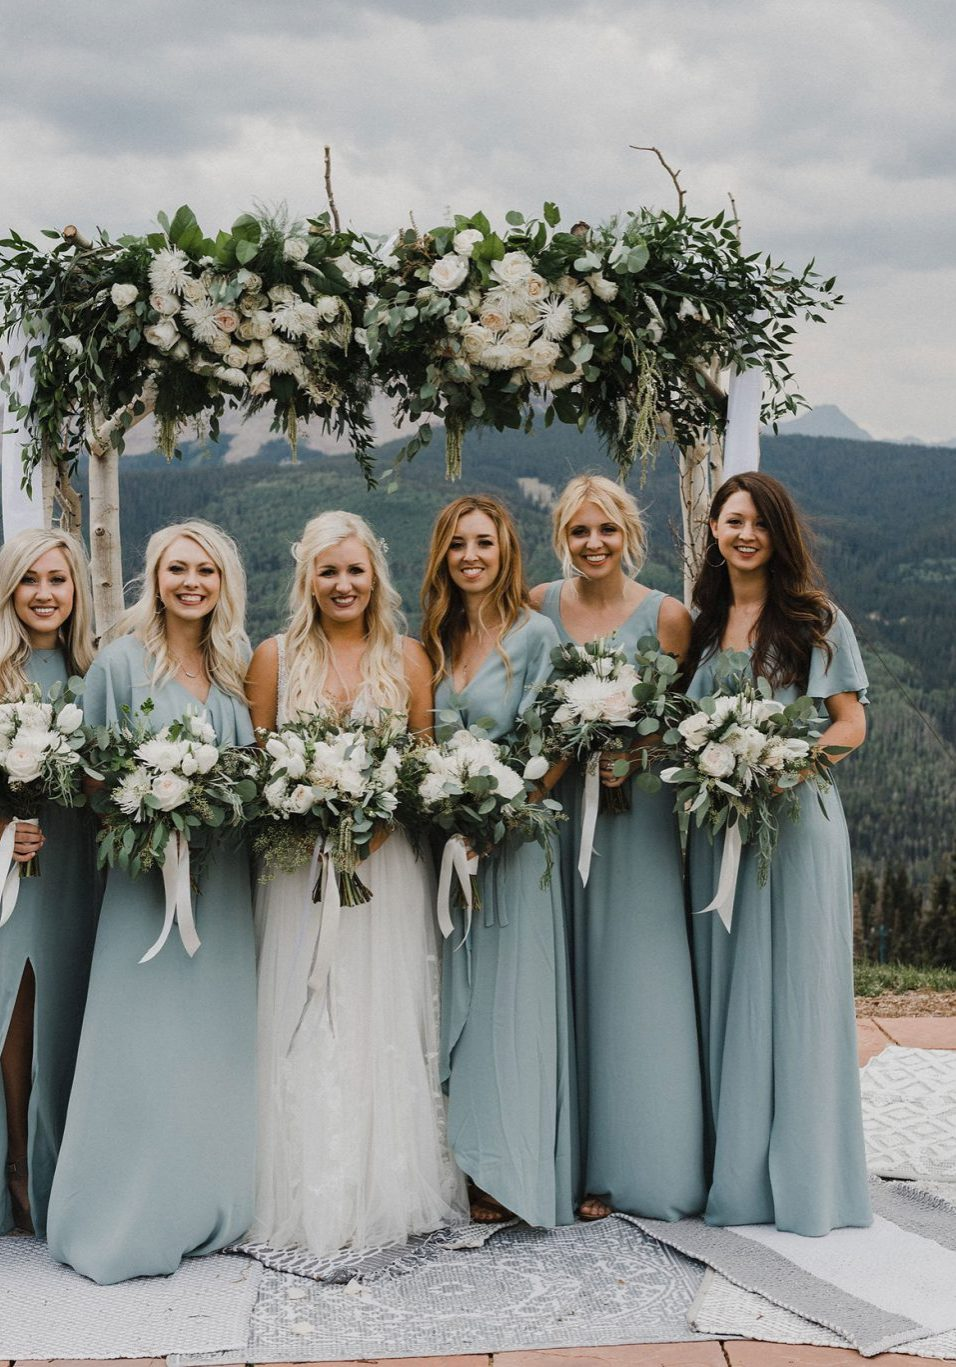 A Perfectly Simplistic Mountain Wedding at Purgatory Resort, Durango Colorado